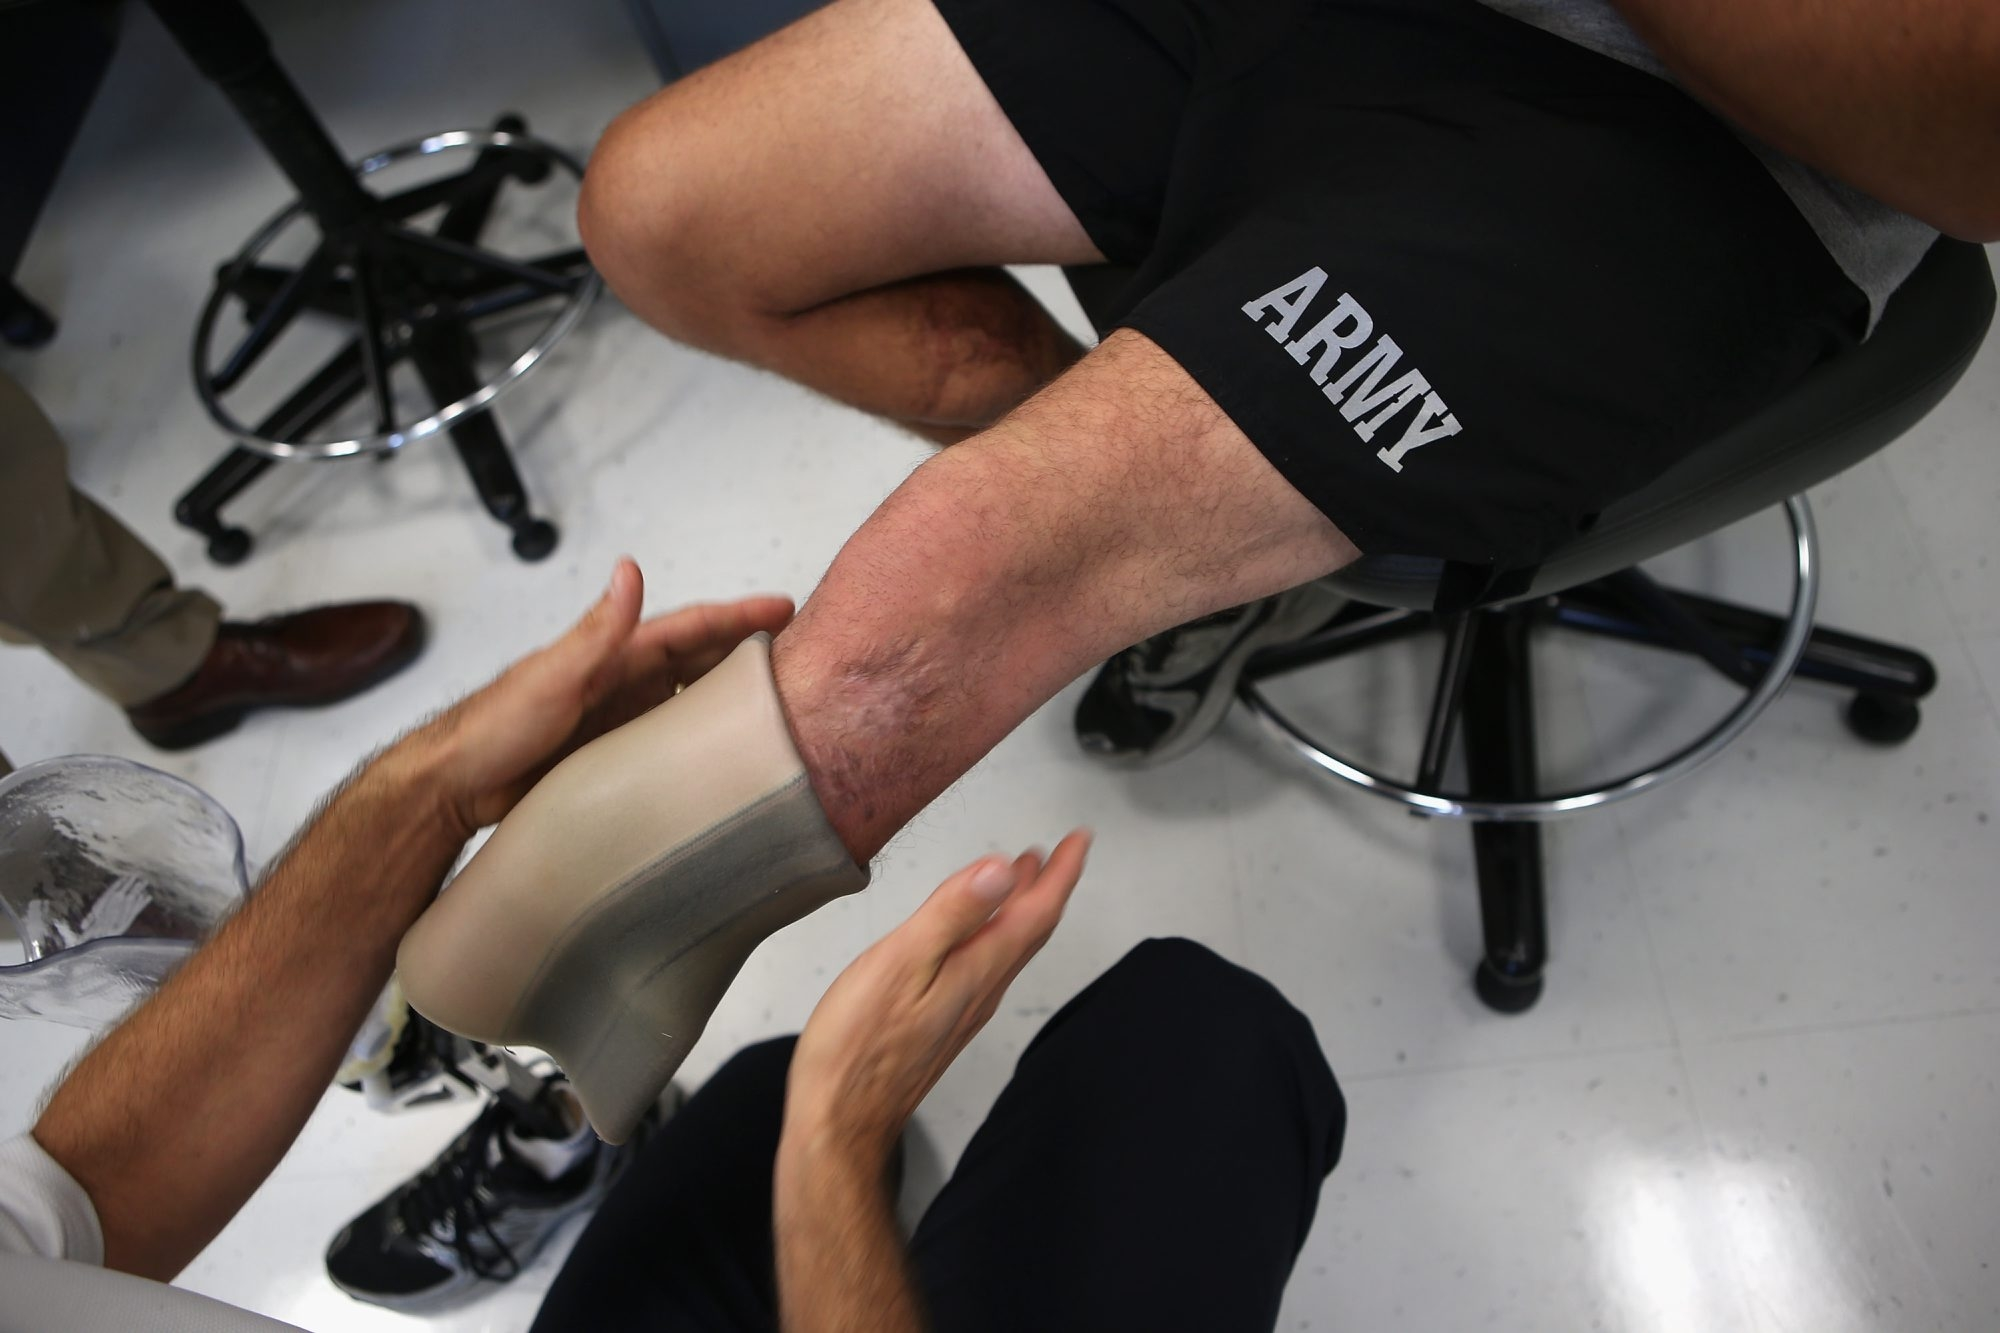 A prosthesis liner is fitted onto the leg of an Army soldier at Brooke Army Medical Center in San Antonio, Texas.